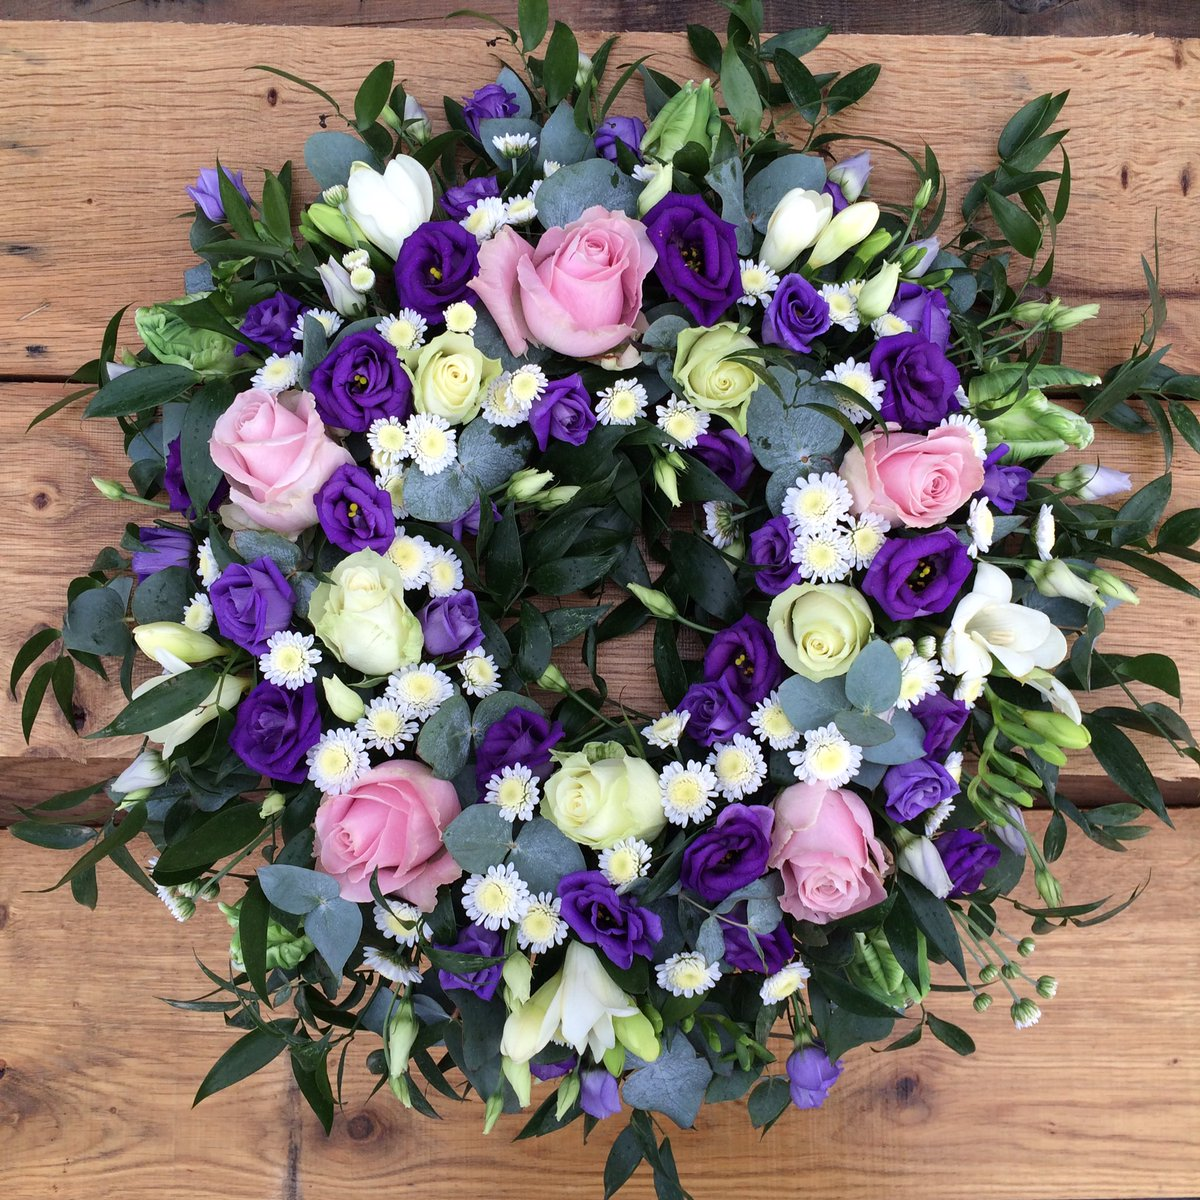 Hannah rose flowers hroseflowers twitter sympathy wreath for a lady that loved pink and purple funeralflowers flowers arrangement florist hampshirepicitterj6pejqxp4o izmirmasajfo Images